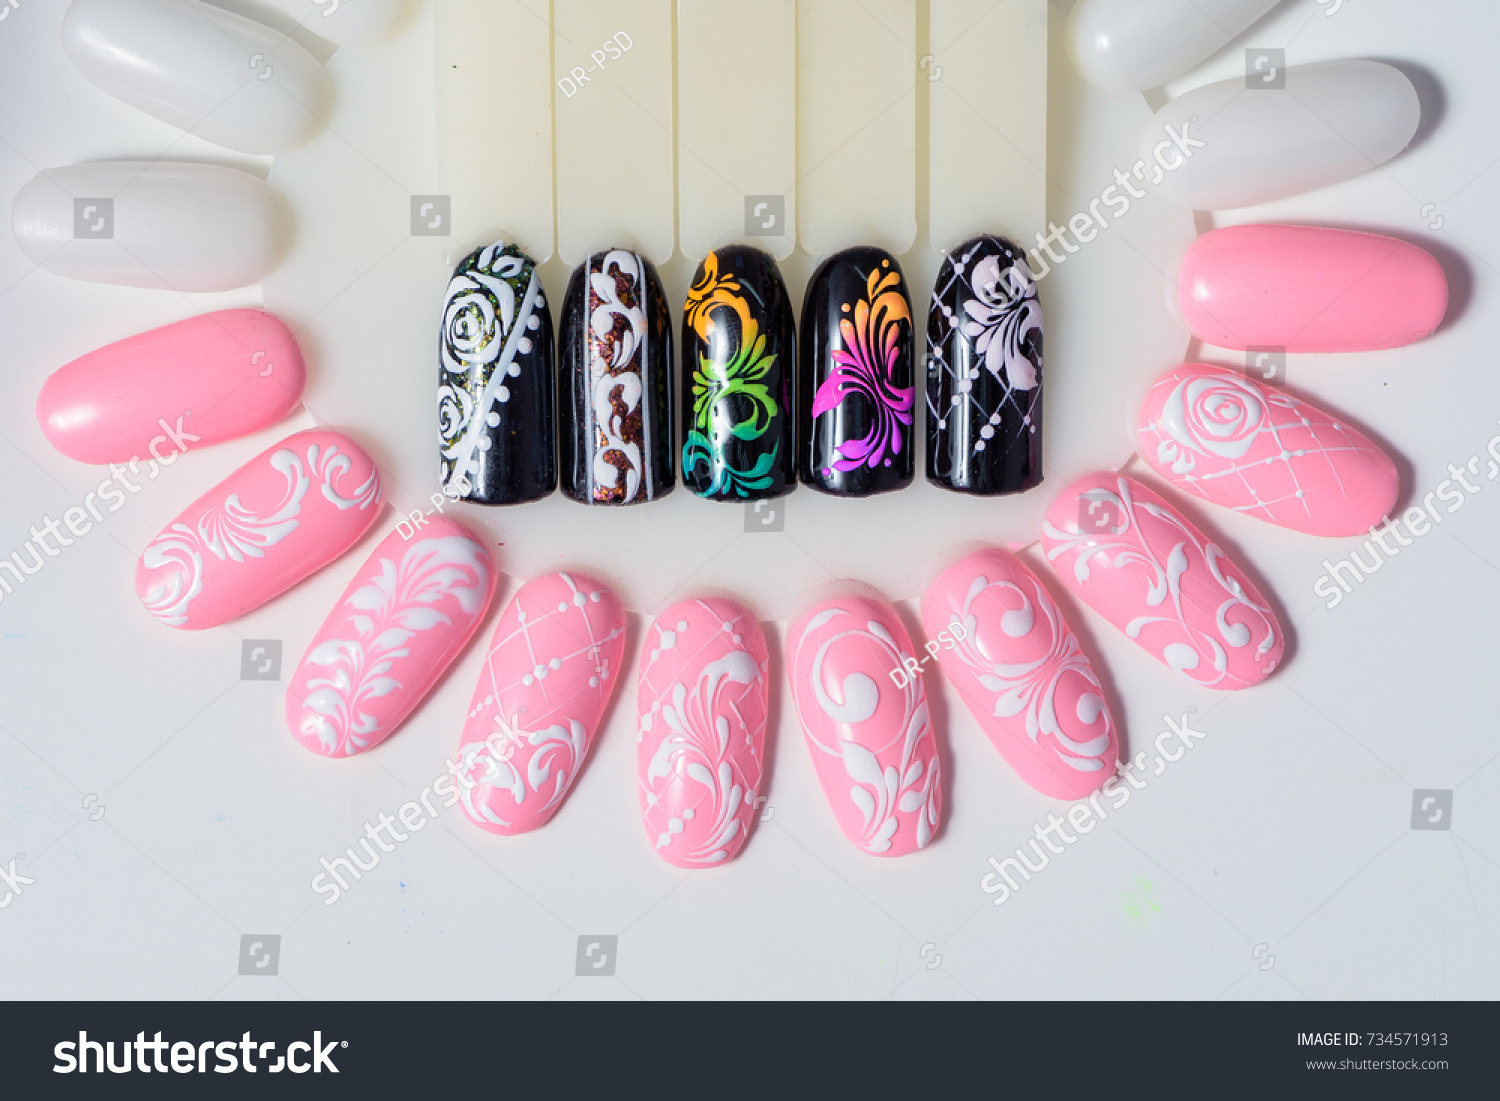 Manicure Nail Color Design Samples Pink Stock Photo (Edit Now ...